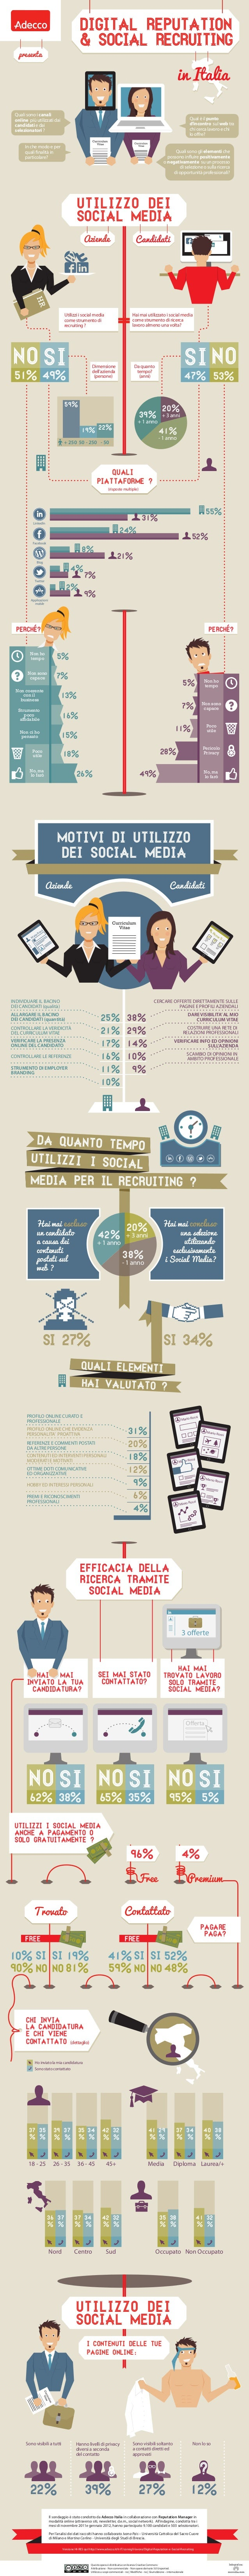 Digital Reputation e Social Recruiting - Indagine Adecco 2012